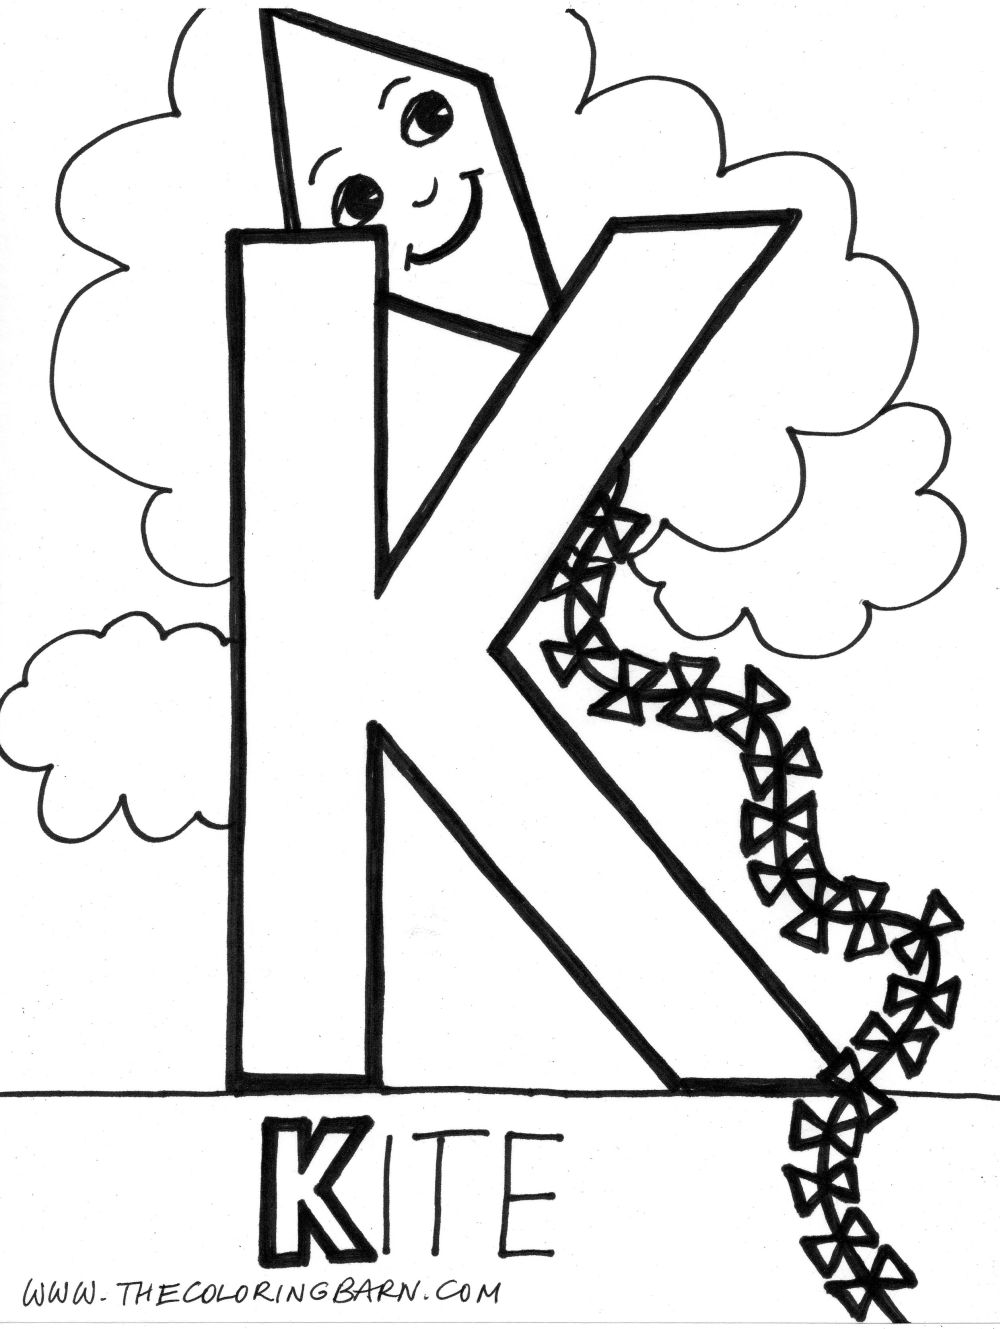 the letter k coloring pages - photo#12